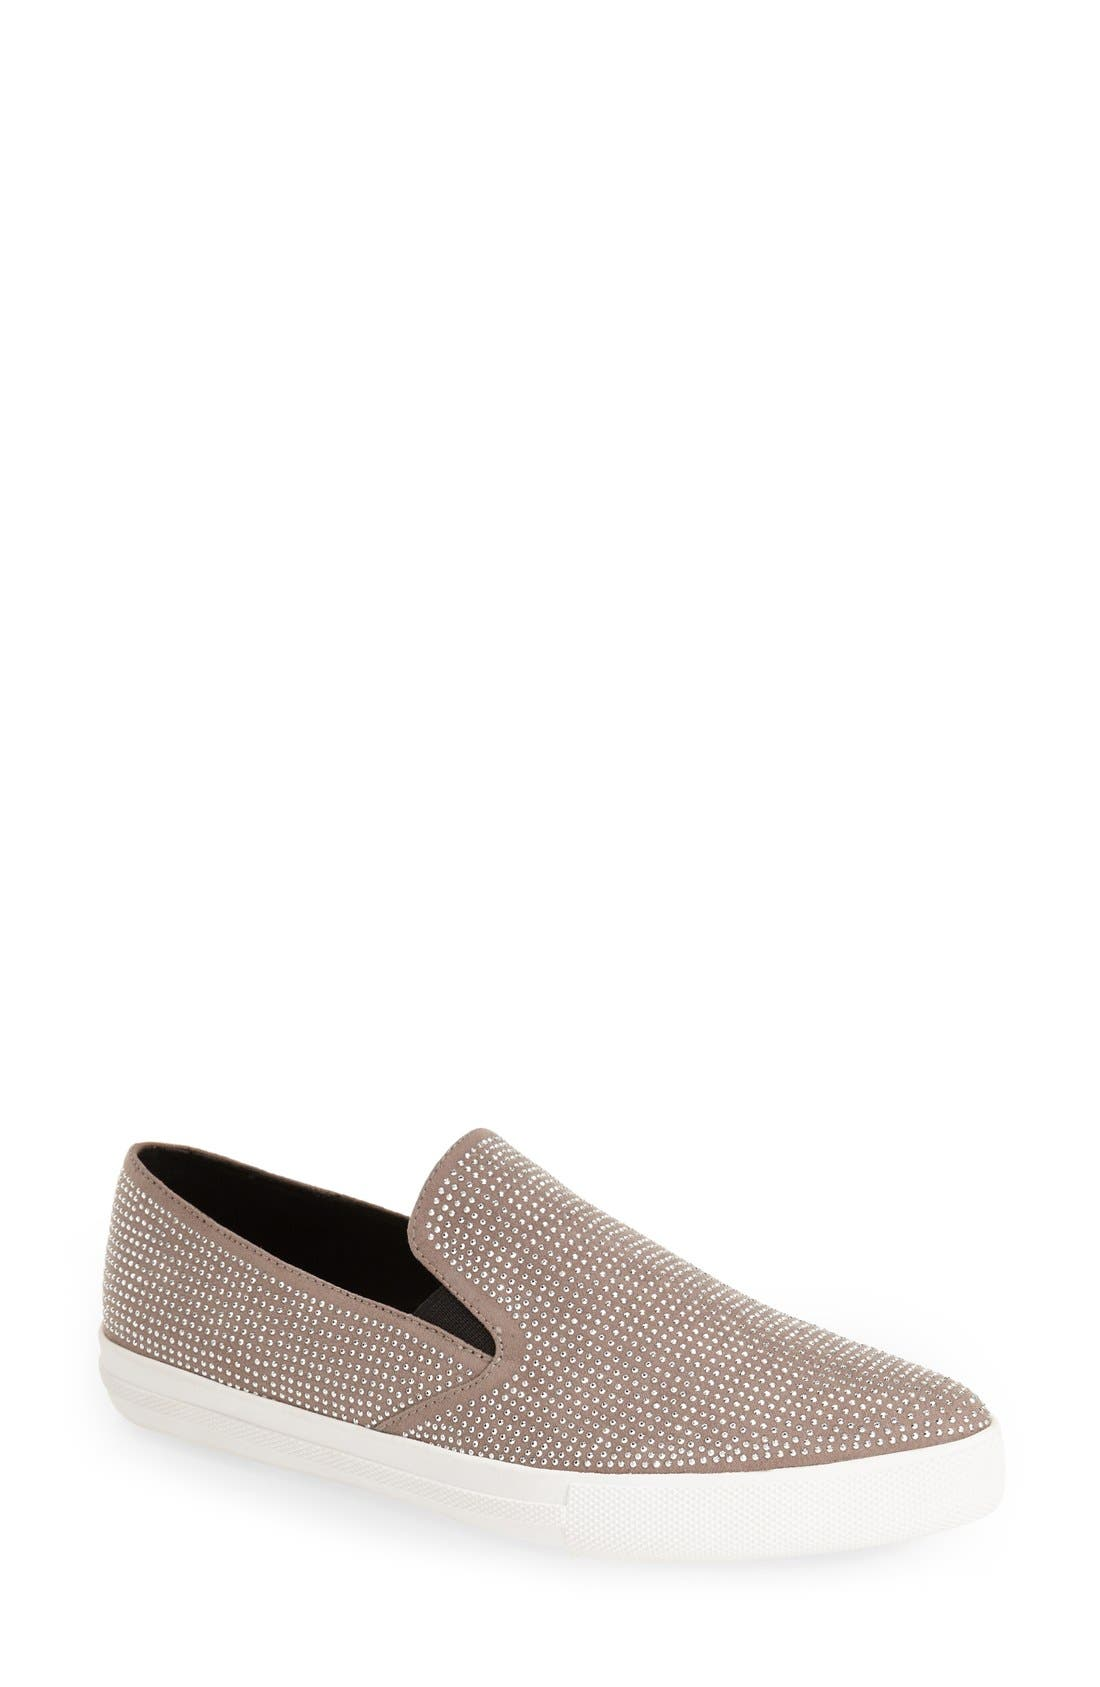 KRISTIN CAVALLARI,                             'Outcome' Embellished Slip-On Sneaker,                             Main thumbnail 1, color,                             020